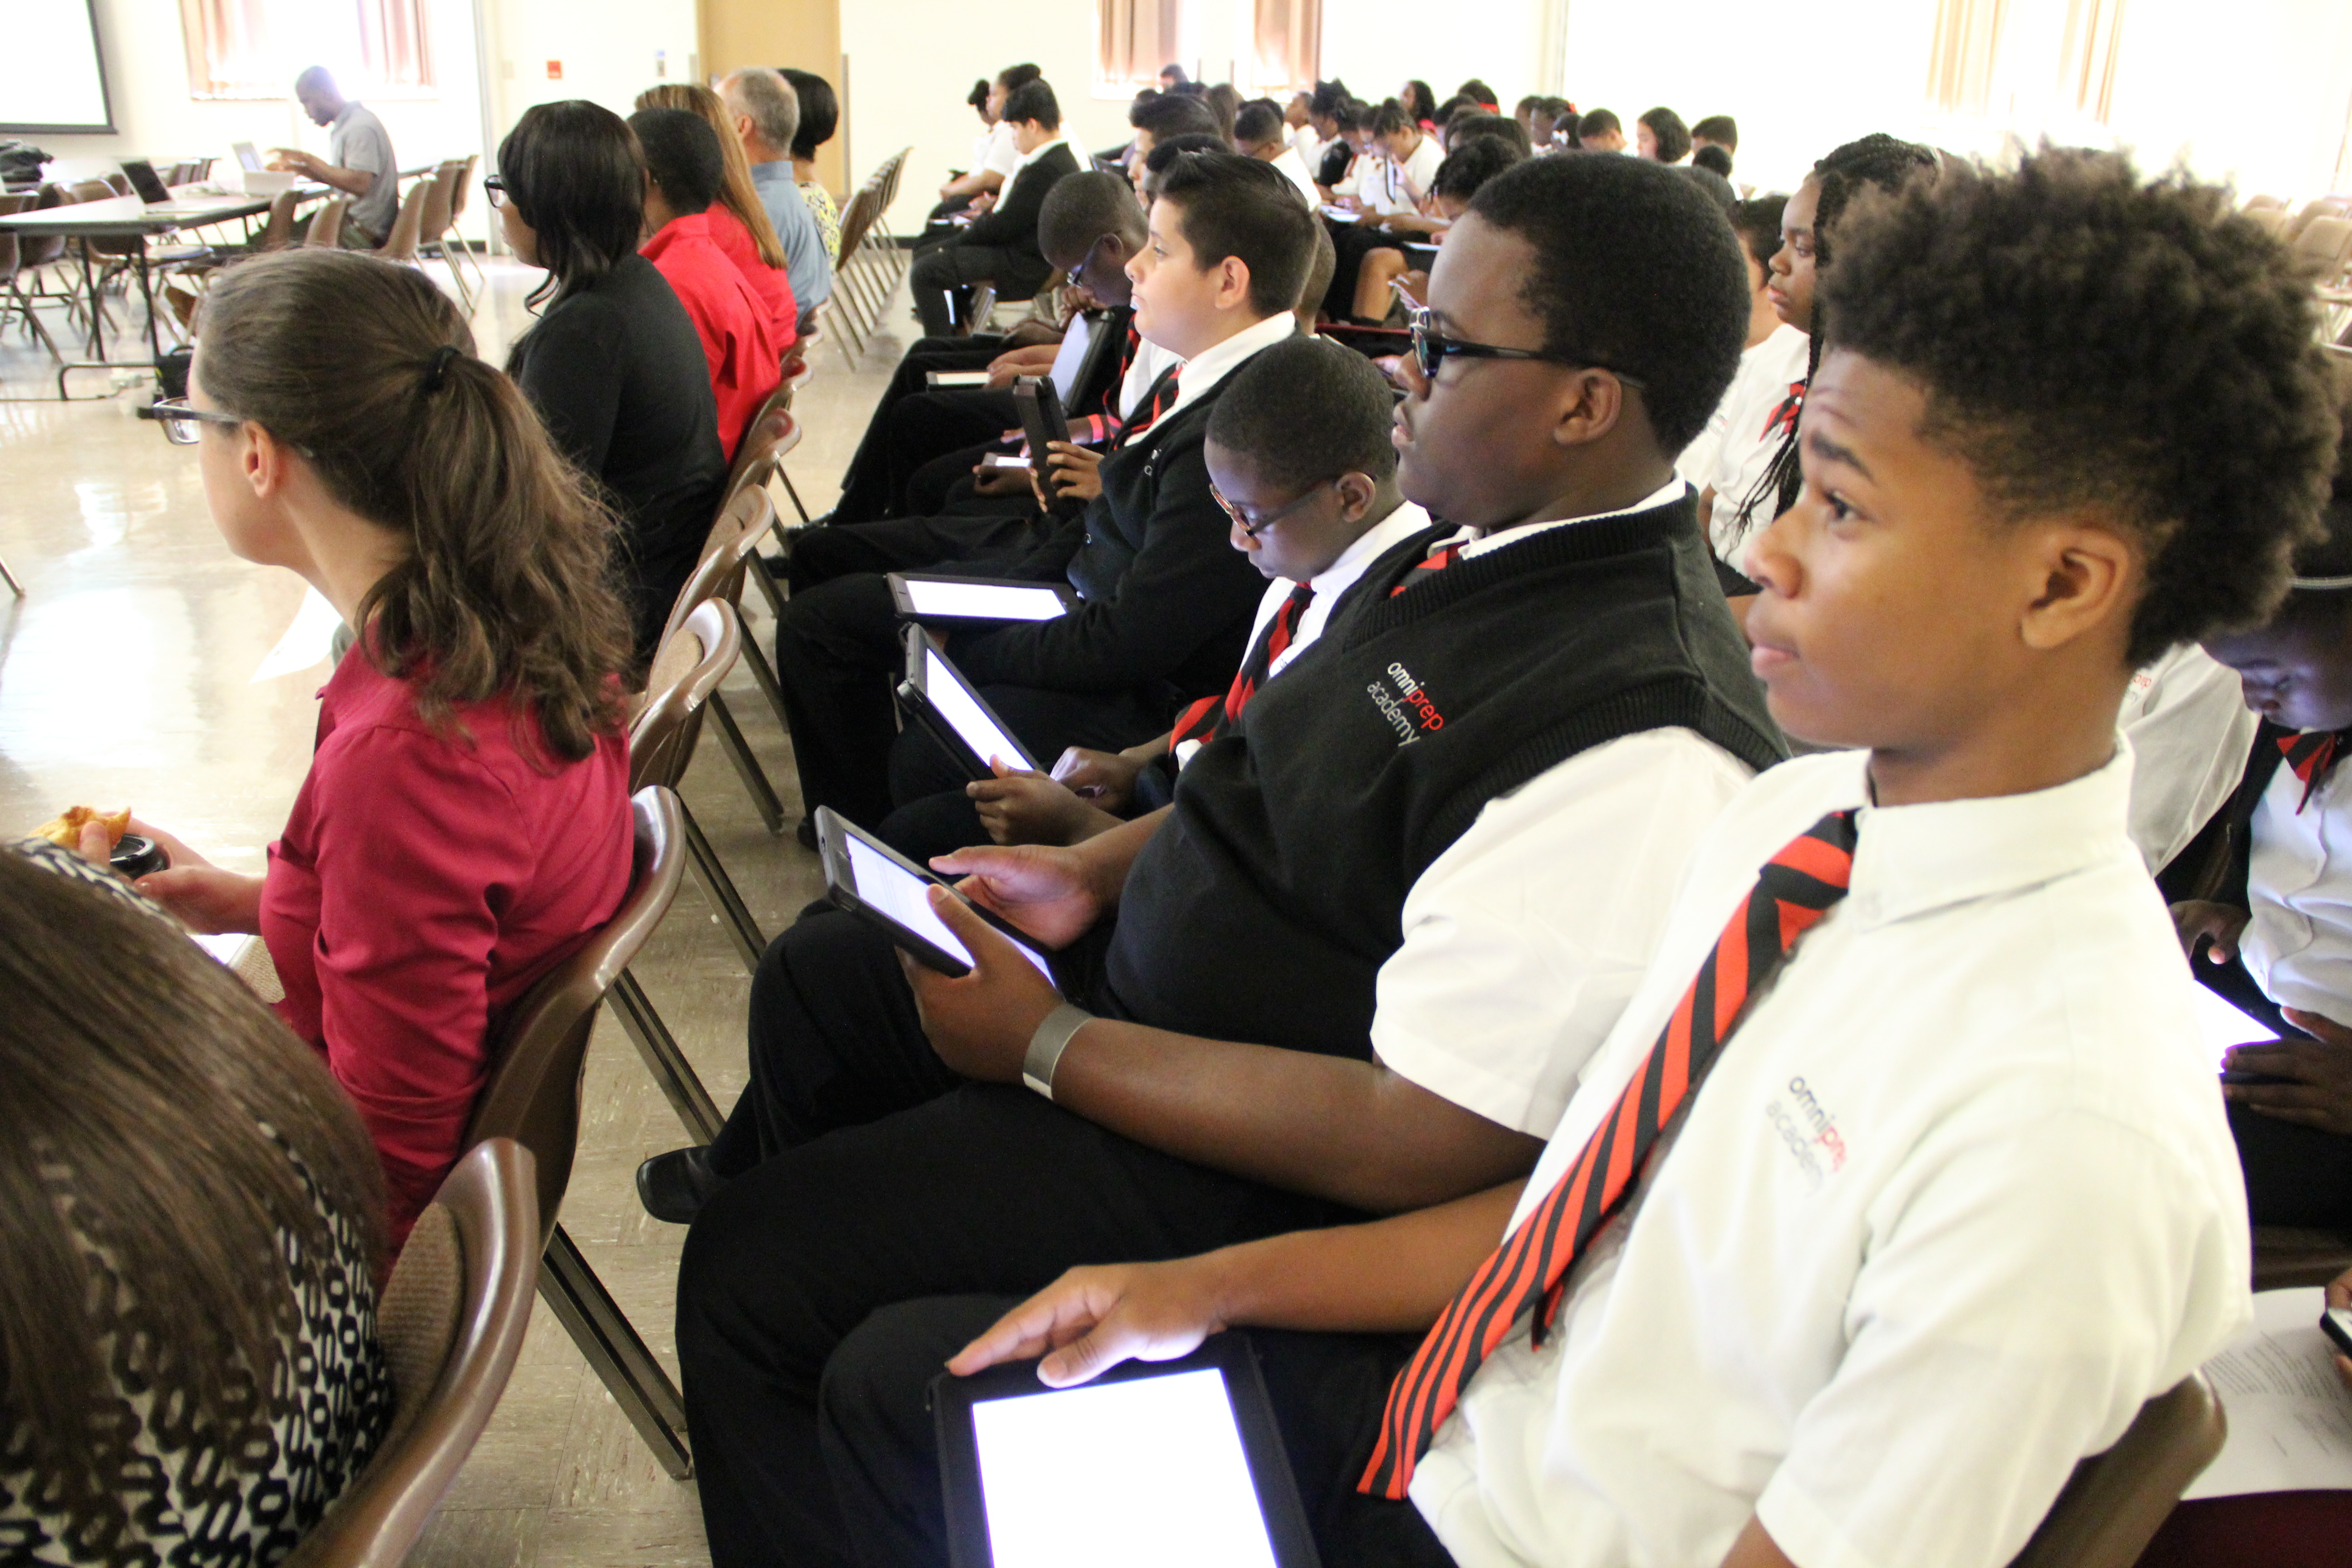 Students at Omni Prep Academy attend an appeal hearing in 2015 before the State Board of Education over its unsuccessful effort to open a third school in Memphis.